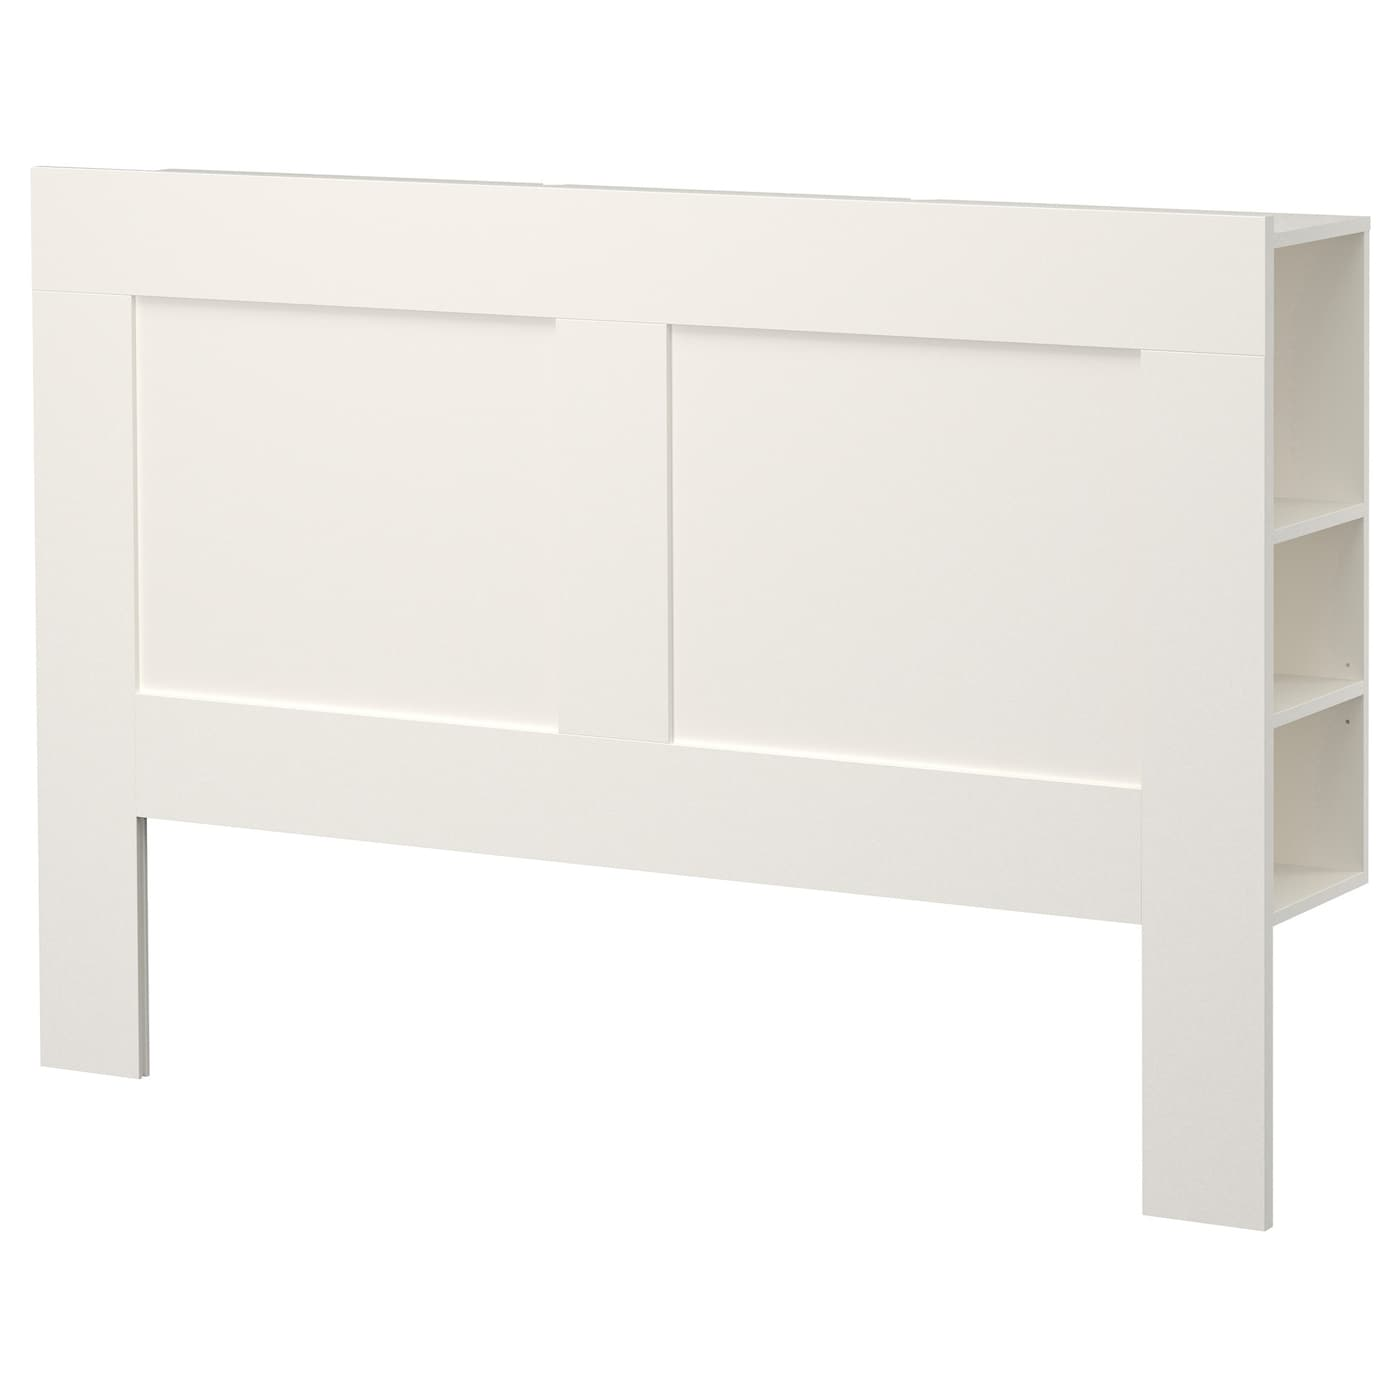 Brimnes headboard with storage compartment white standard for 120 bett ikea